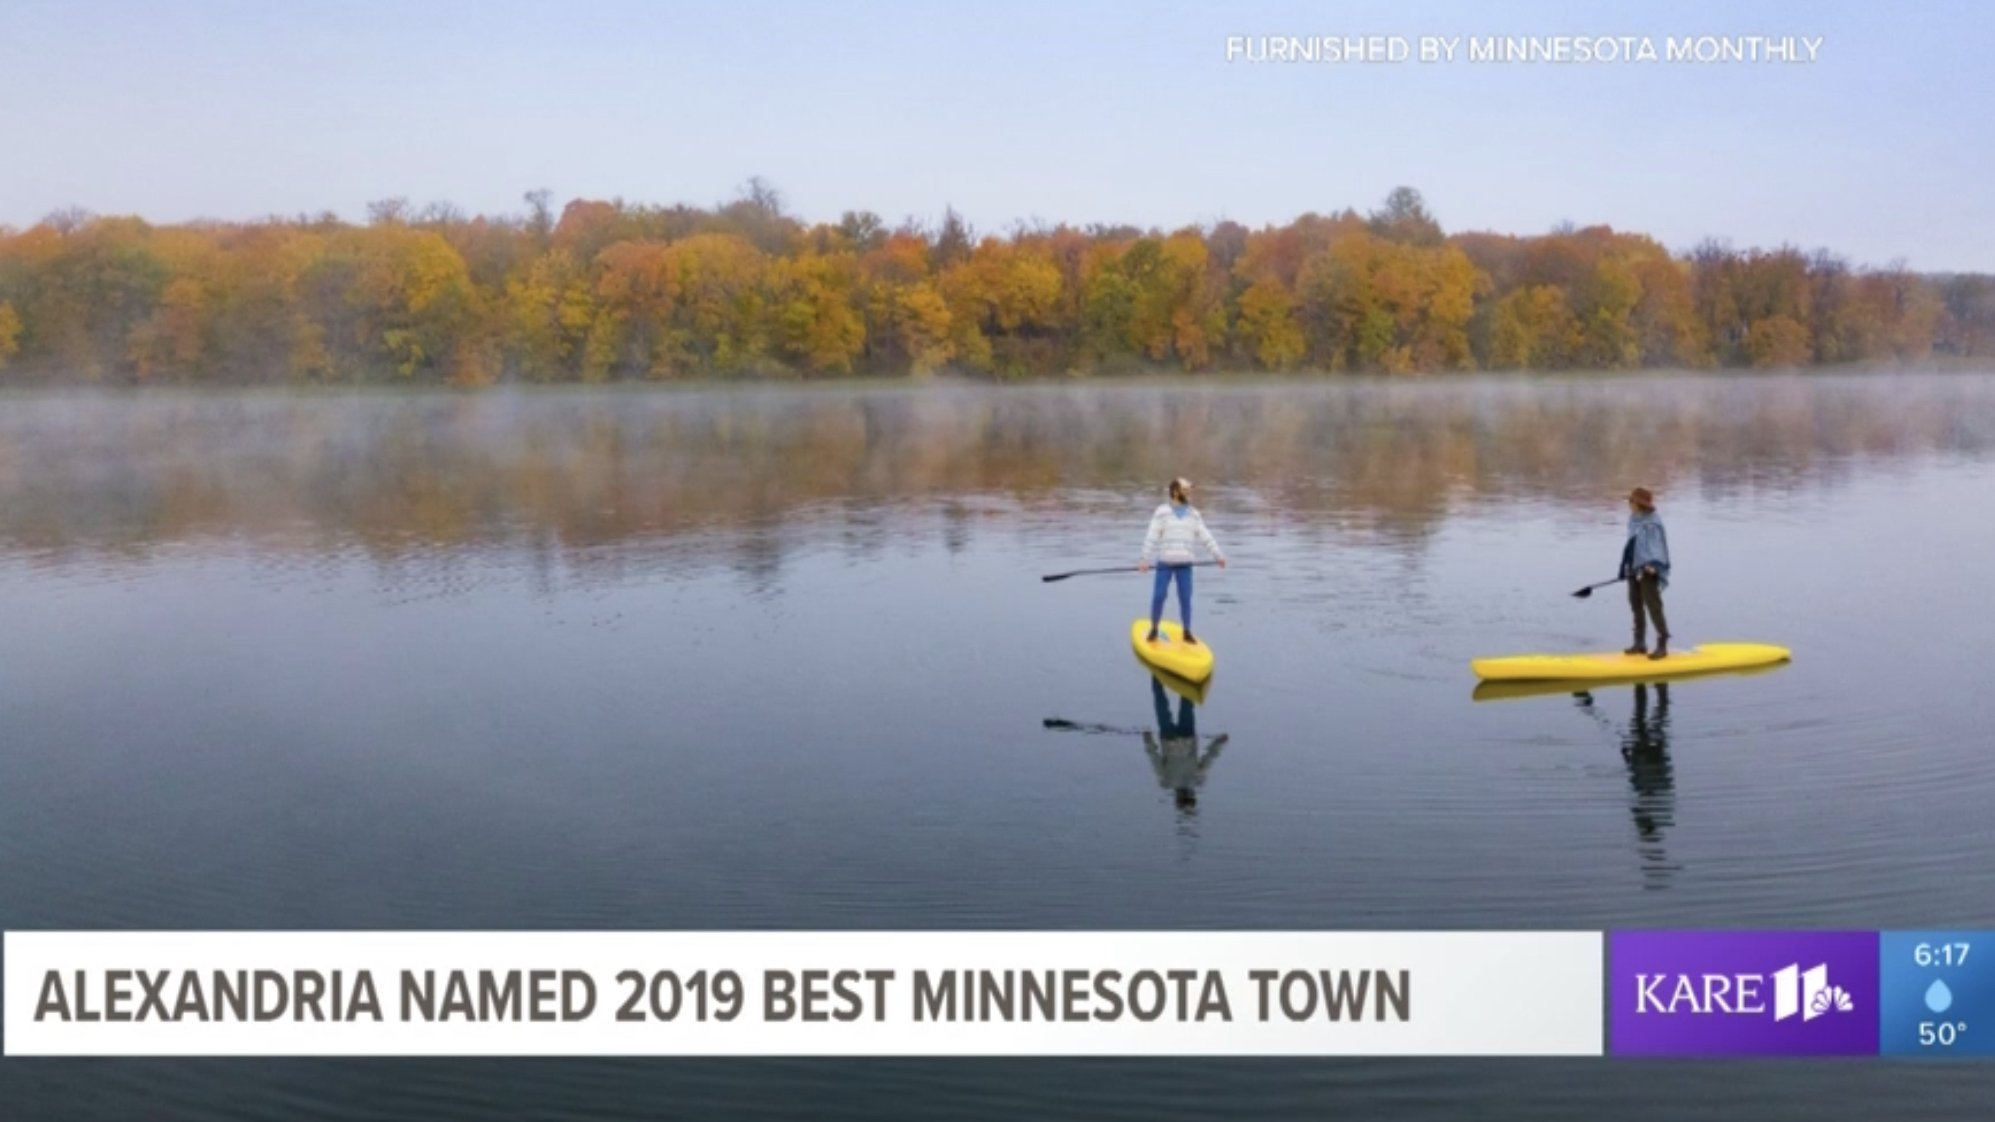 ALEXANDRIA : THE 2019 BEST MINNESOTA TOWN